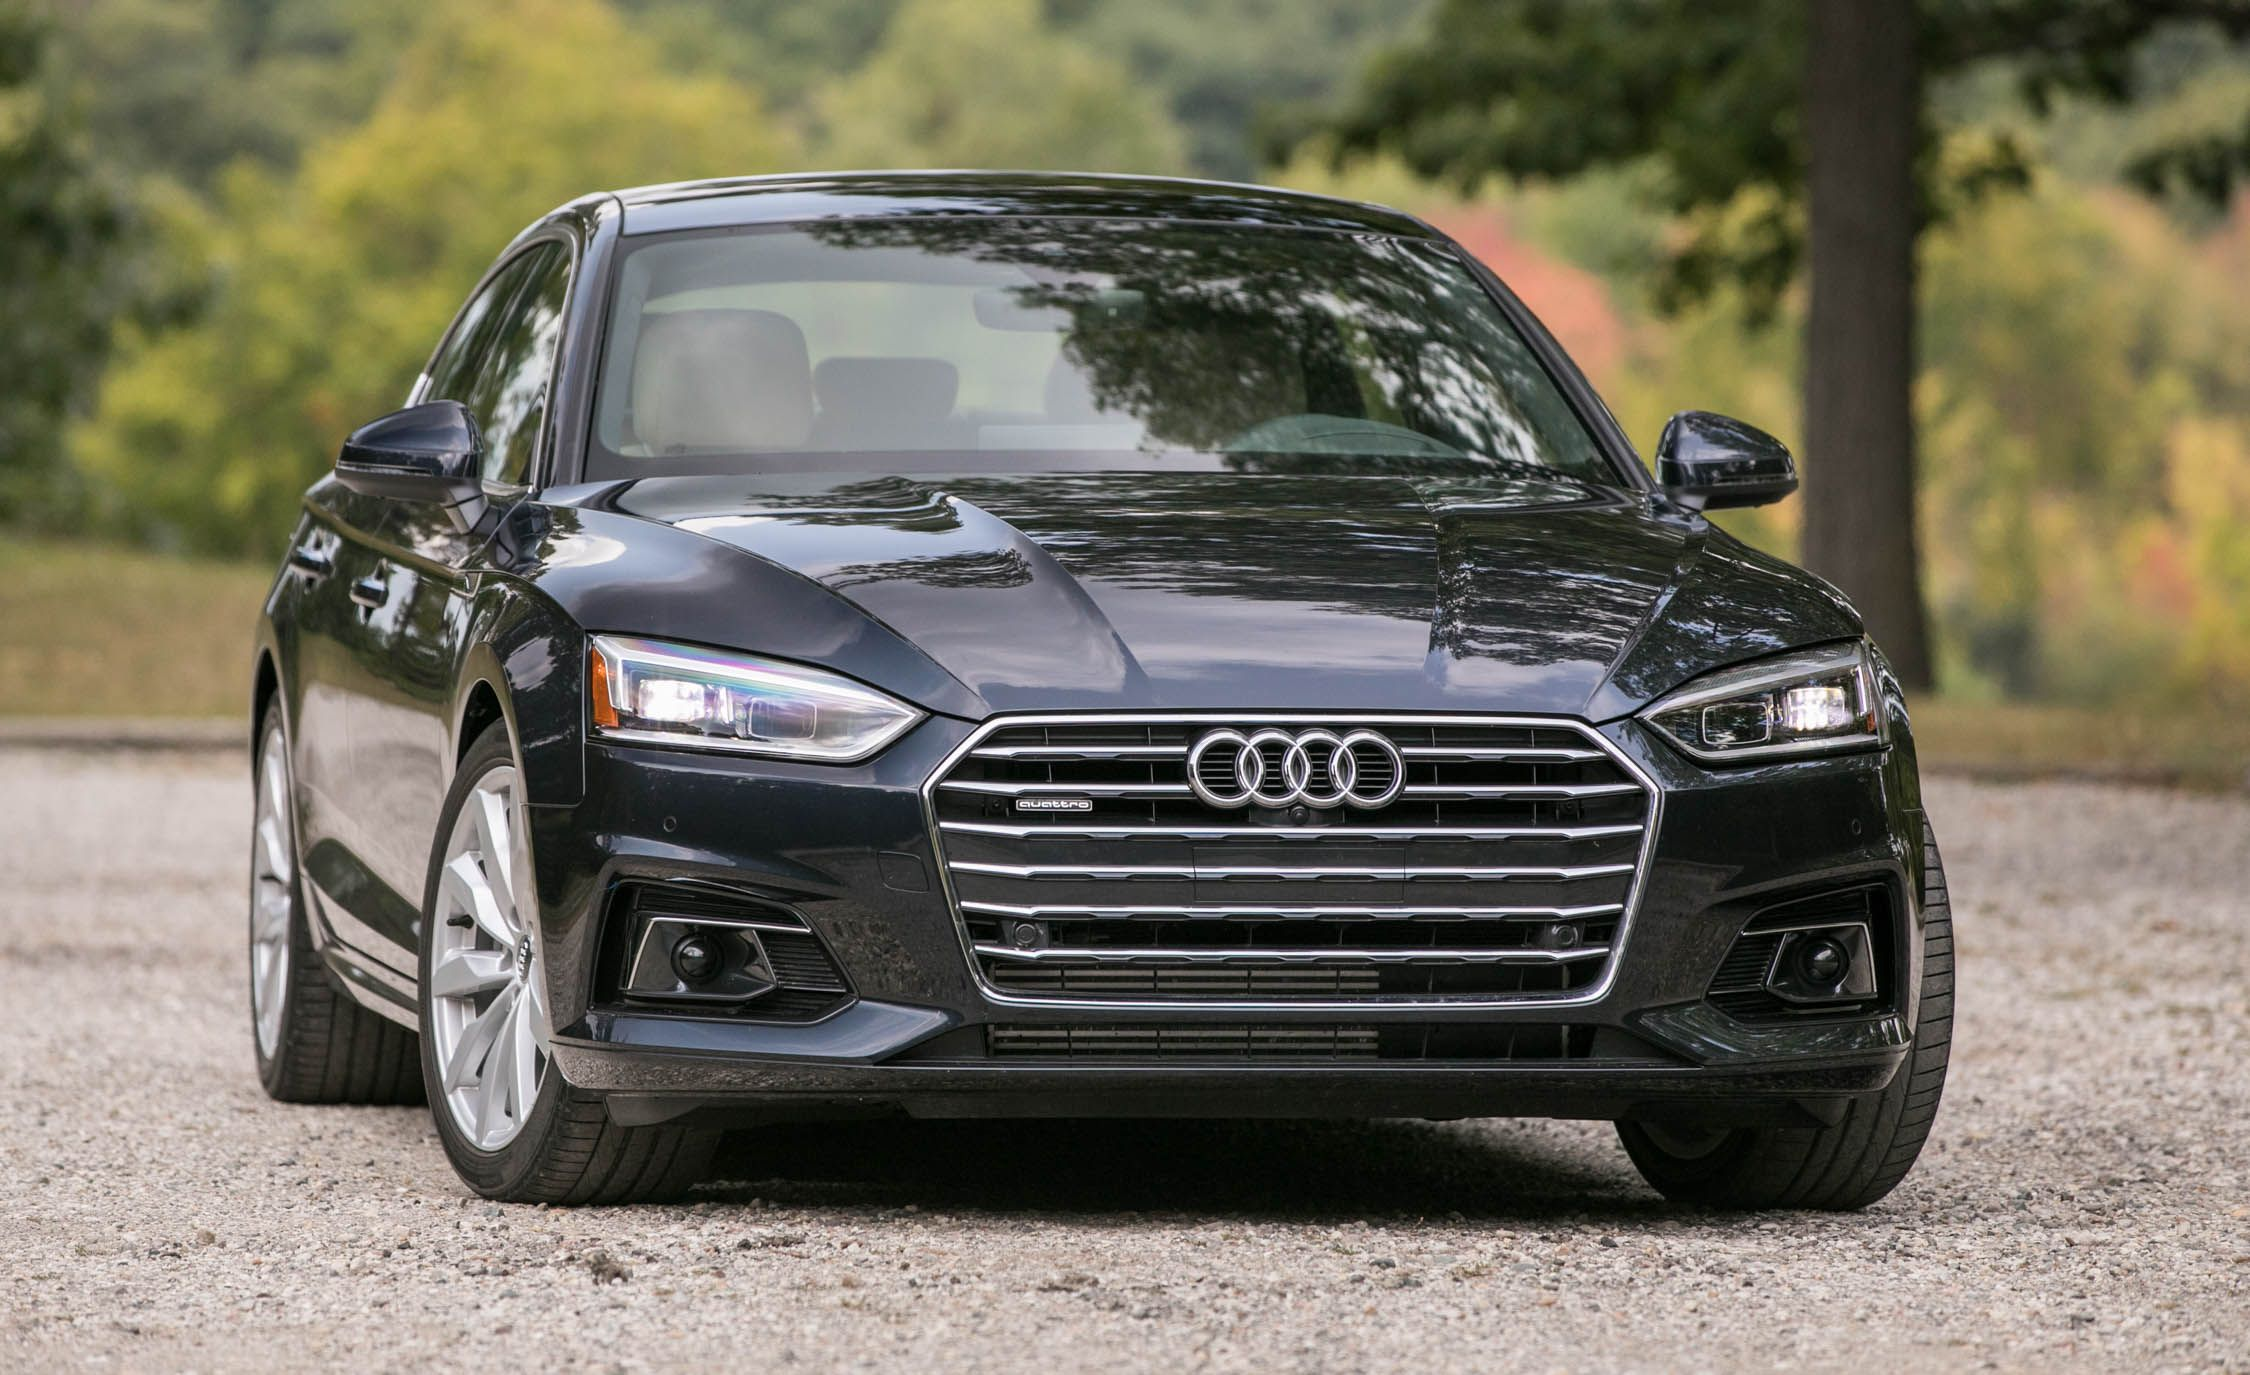 Audi A Sportback Performance And Driving Impressions Review - Audi a5 sportback